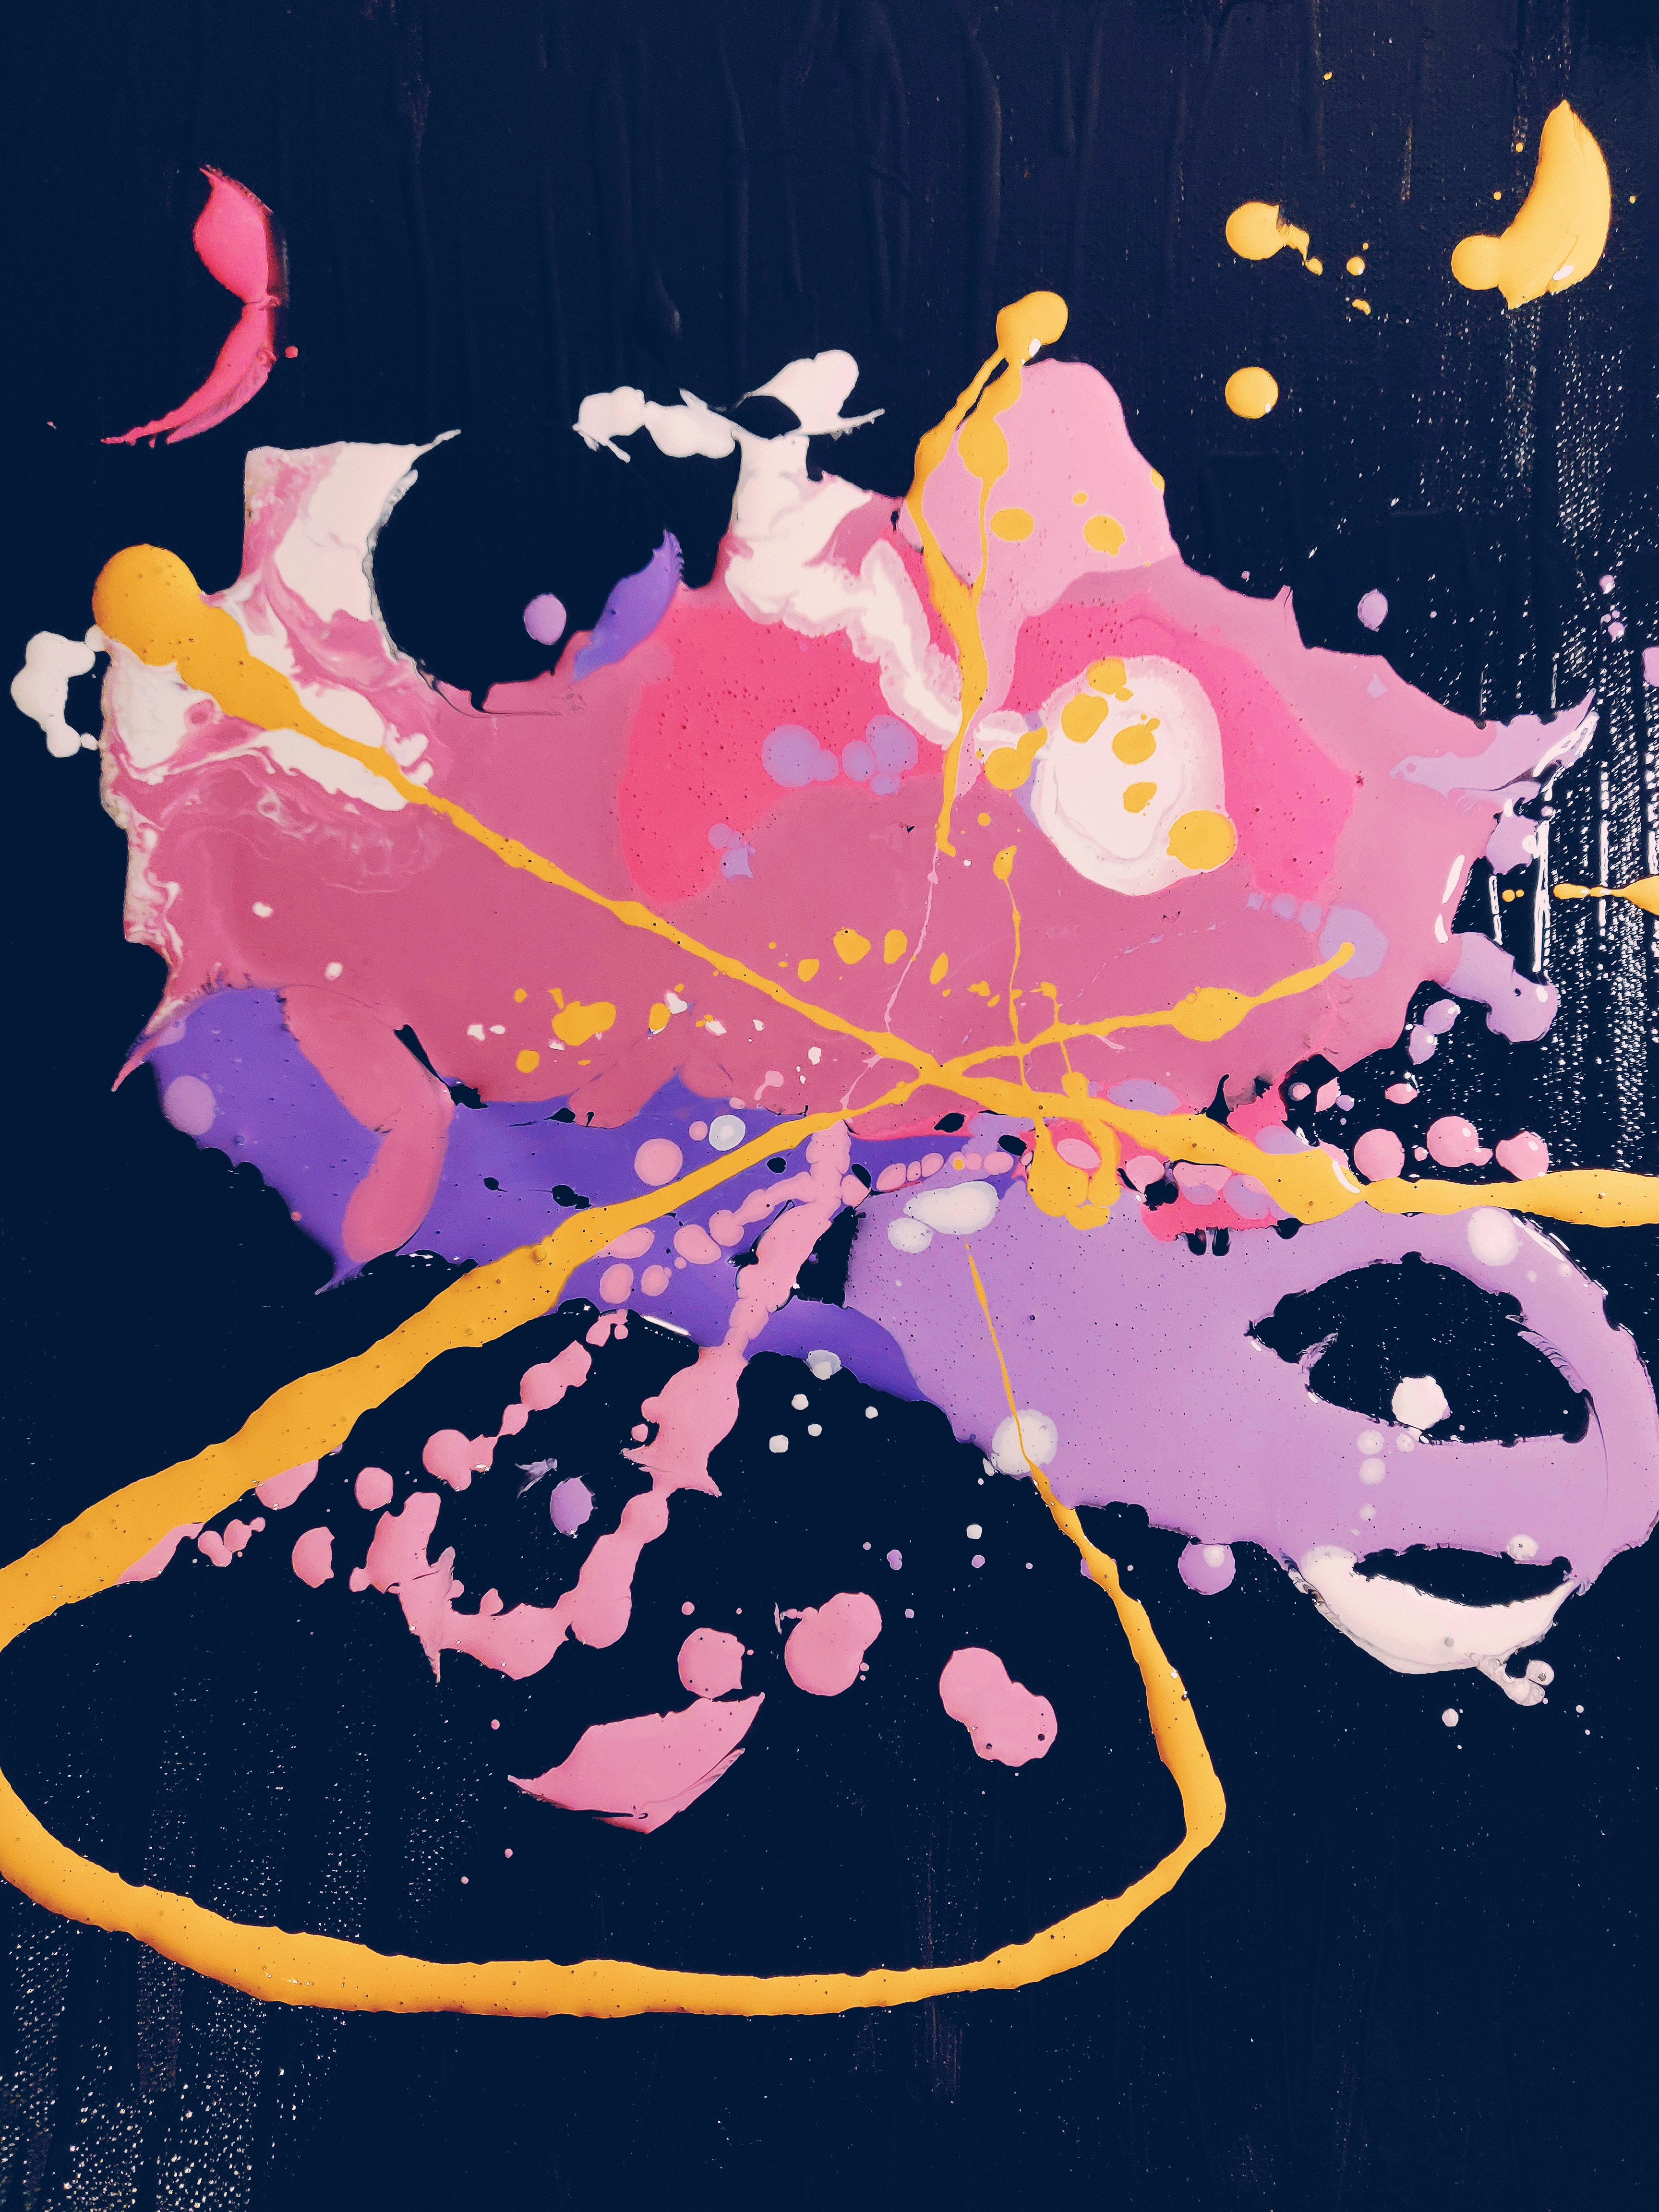 4k-wallpaper-abstract-expressionism-abstract-painting-2911540.jpg